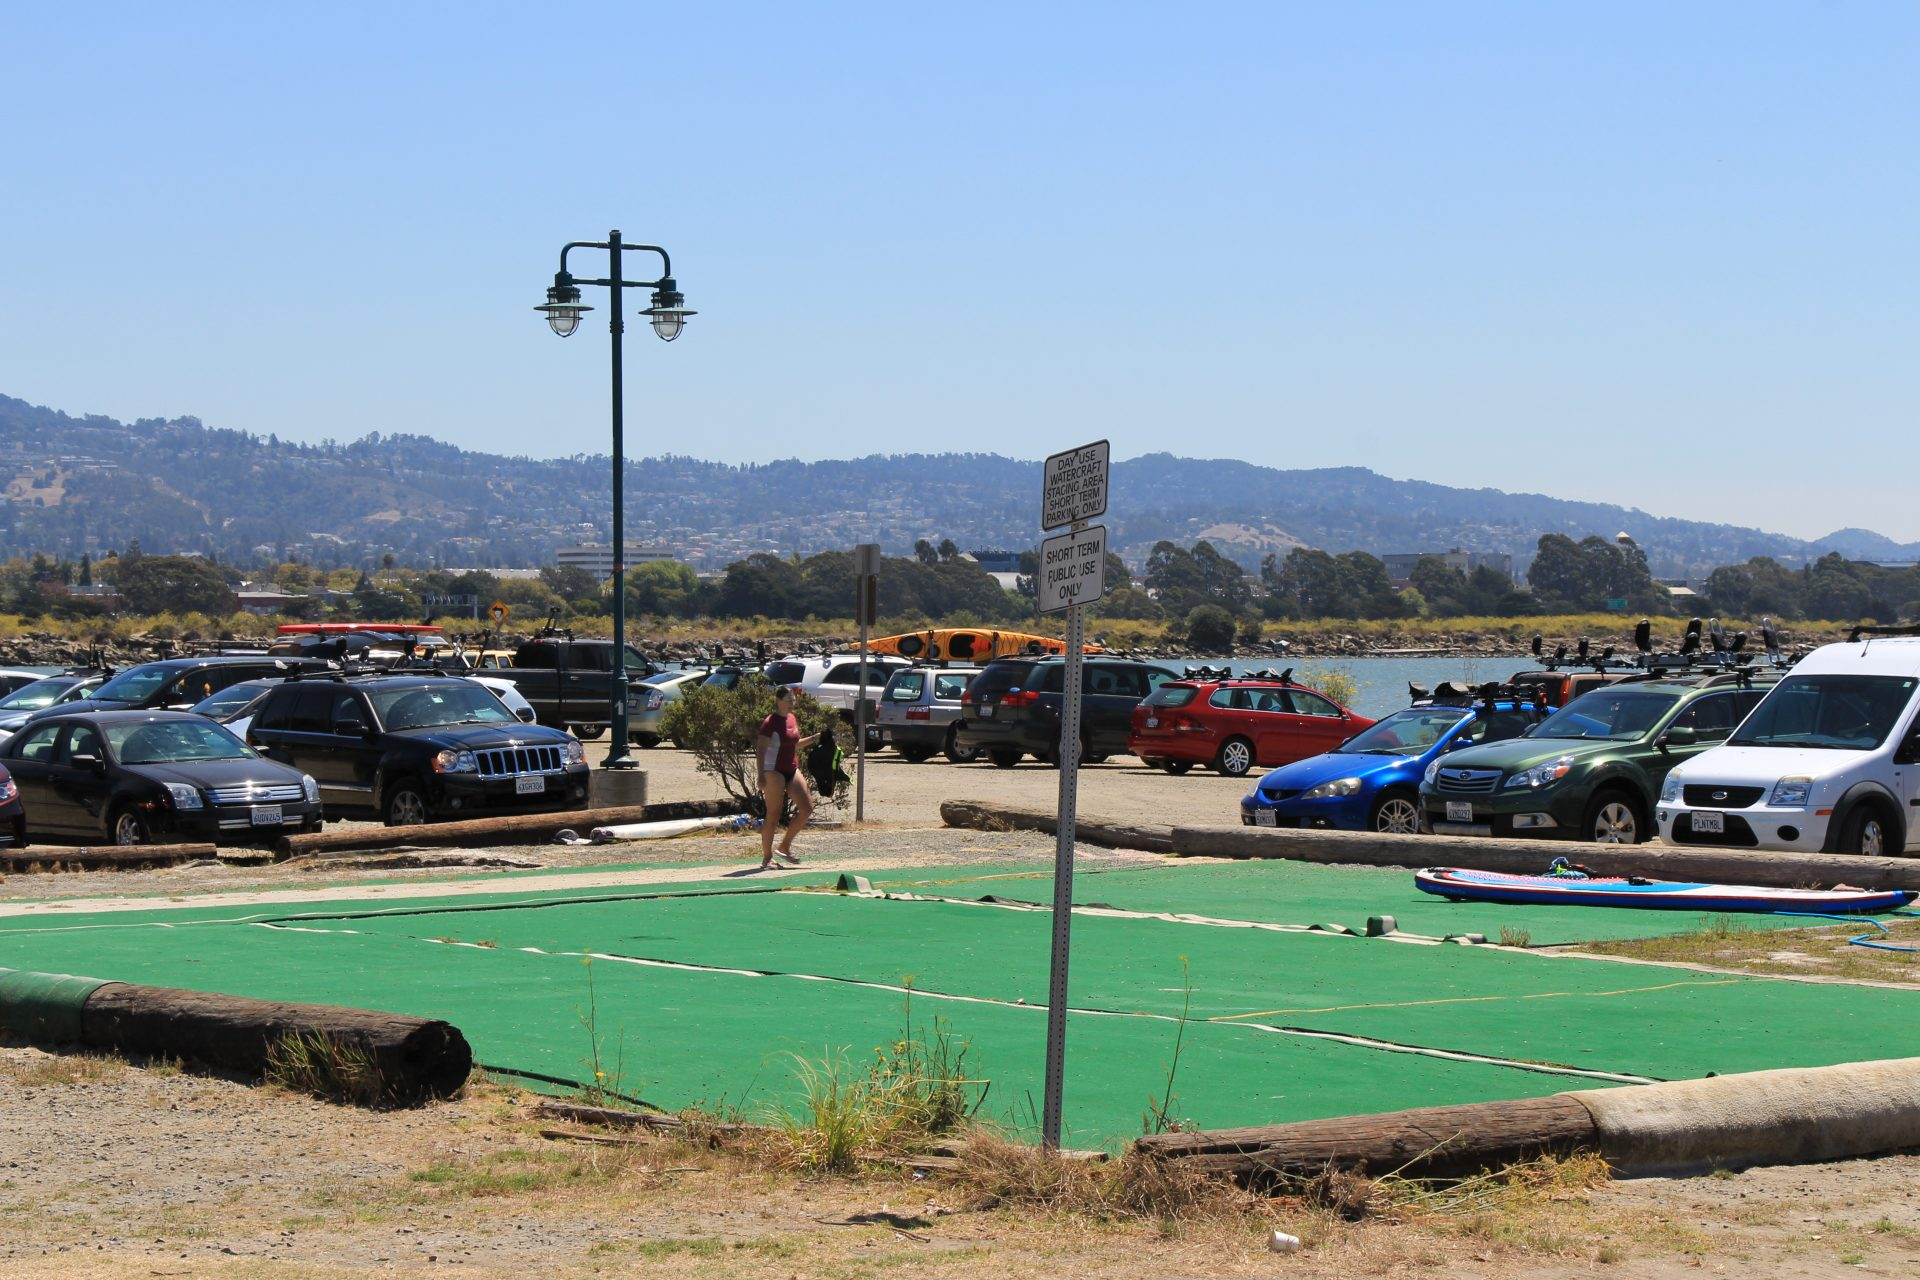 Flat area covered in green astroturf, with dirt parking lot full of cars beyond